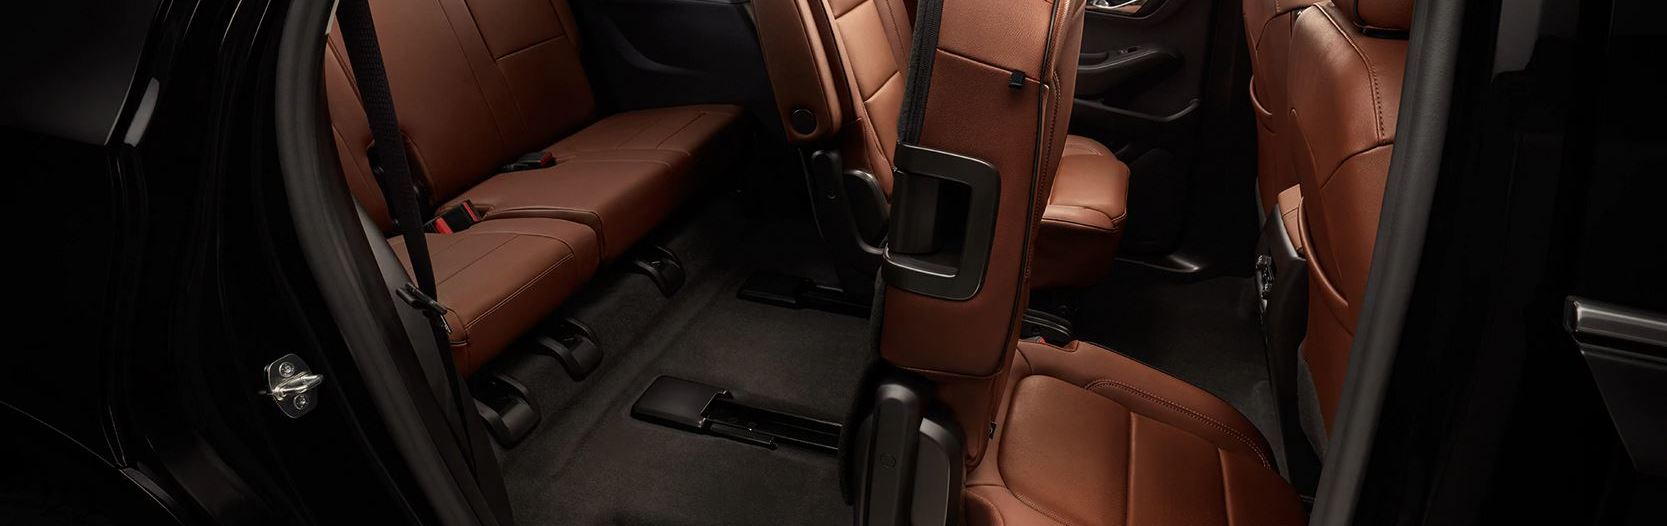 Versatile Seating Options in the 2020 Chevrolet Traverse